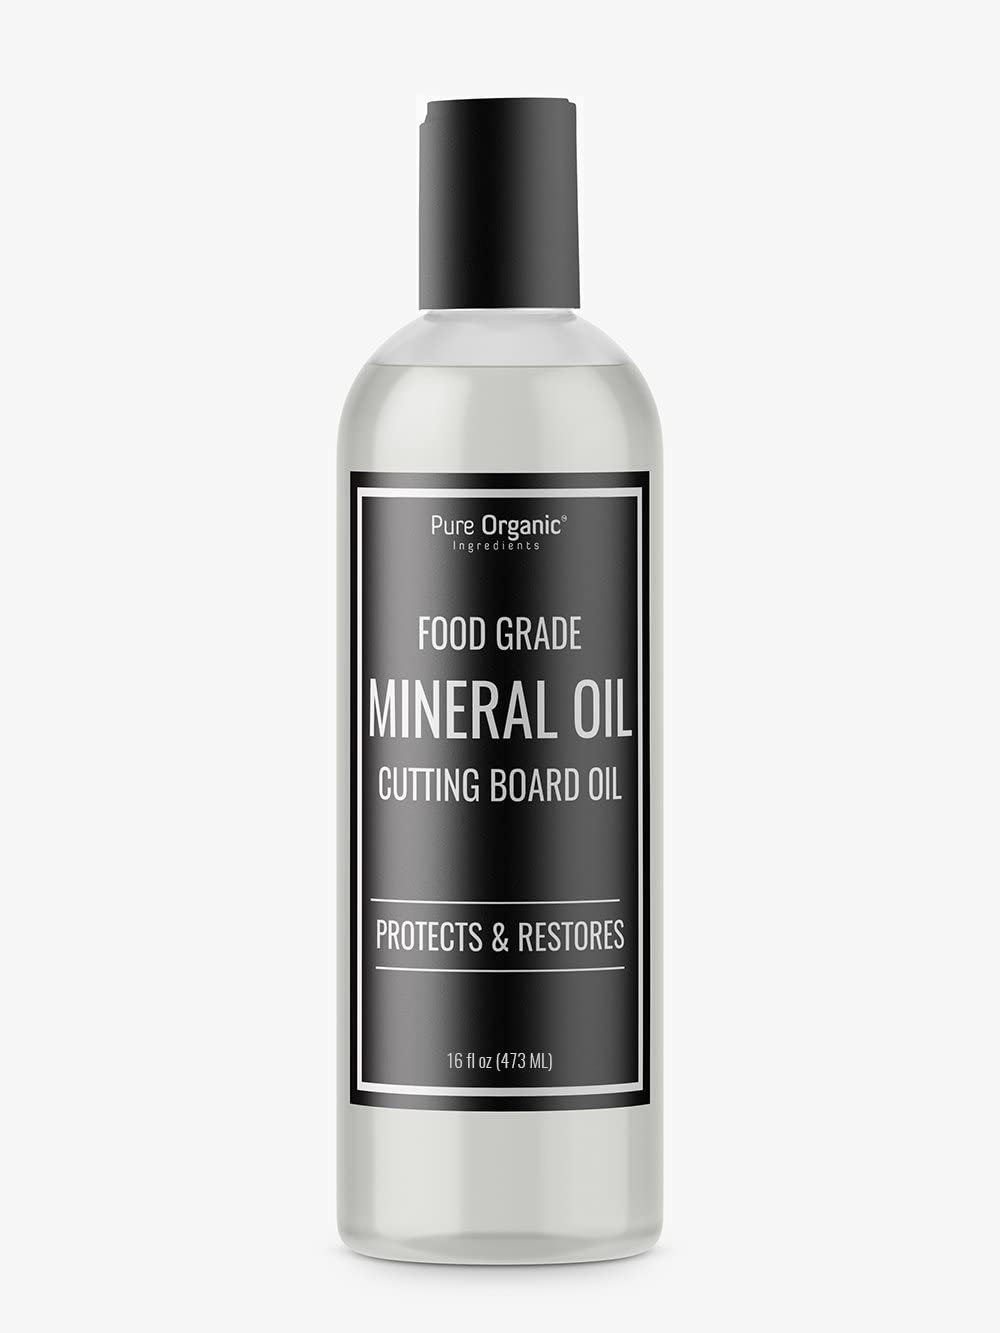 Mineral Oil (16 oz.) by Pure Organic Ingredients, Food & USP Grade, for Cutting Boards, Butcher Blocks, Counter Tops, Wooden Utensils, More